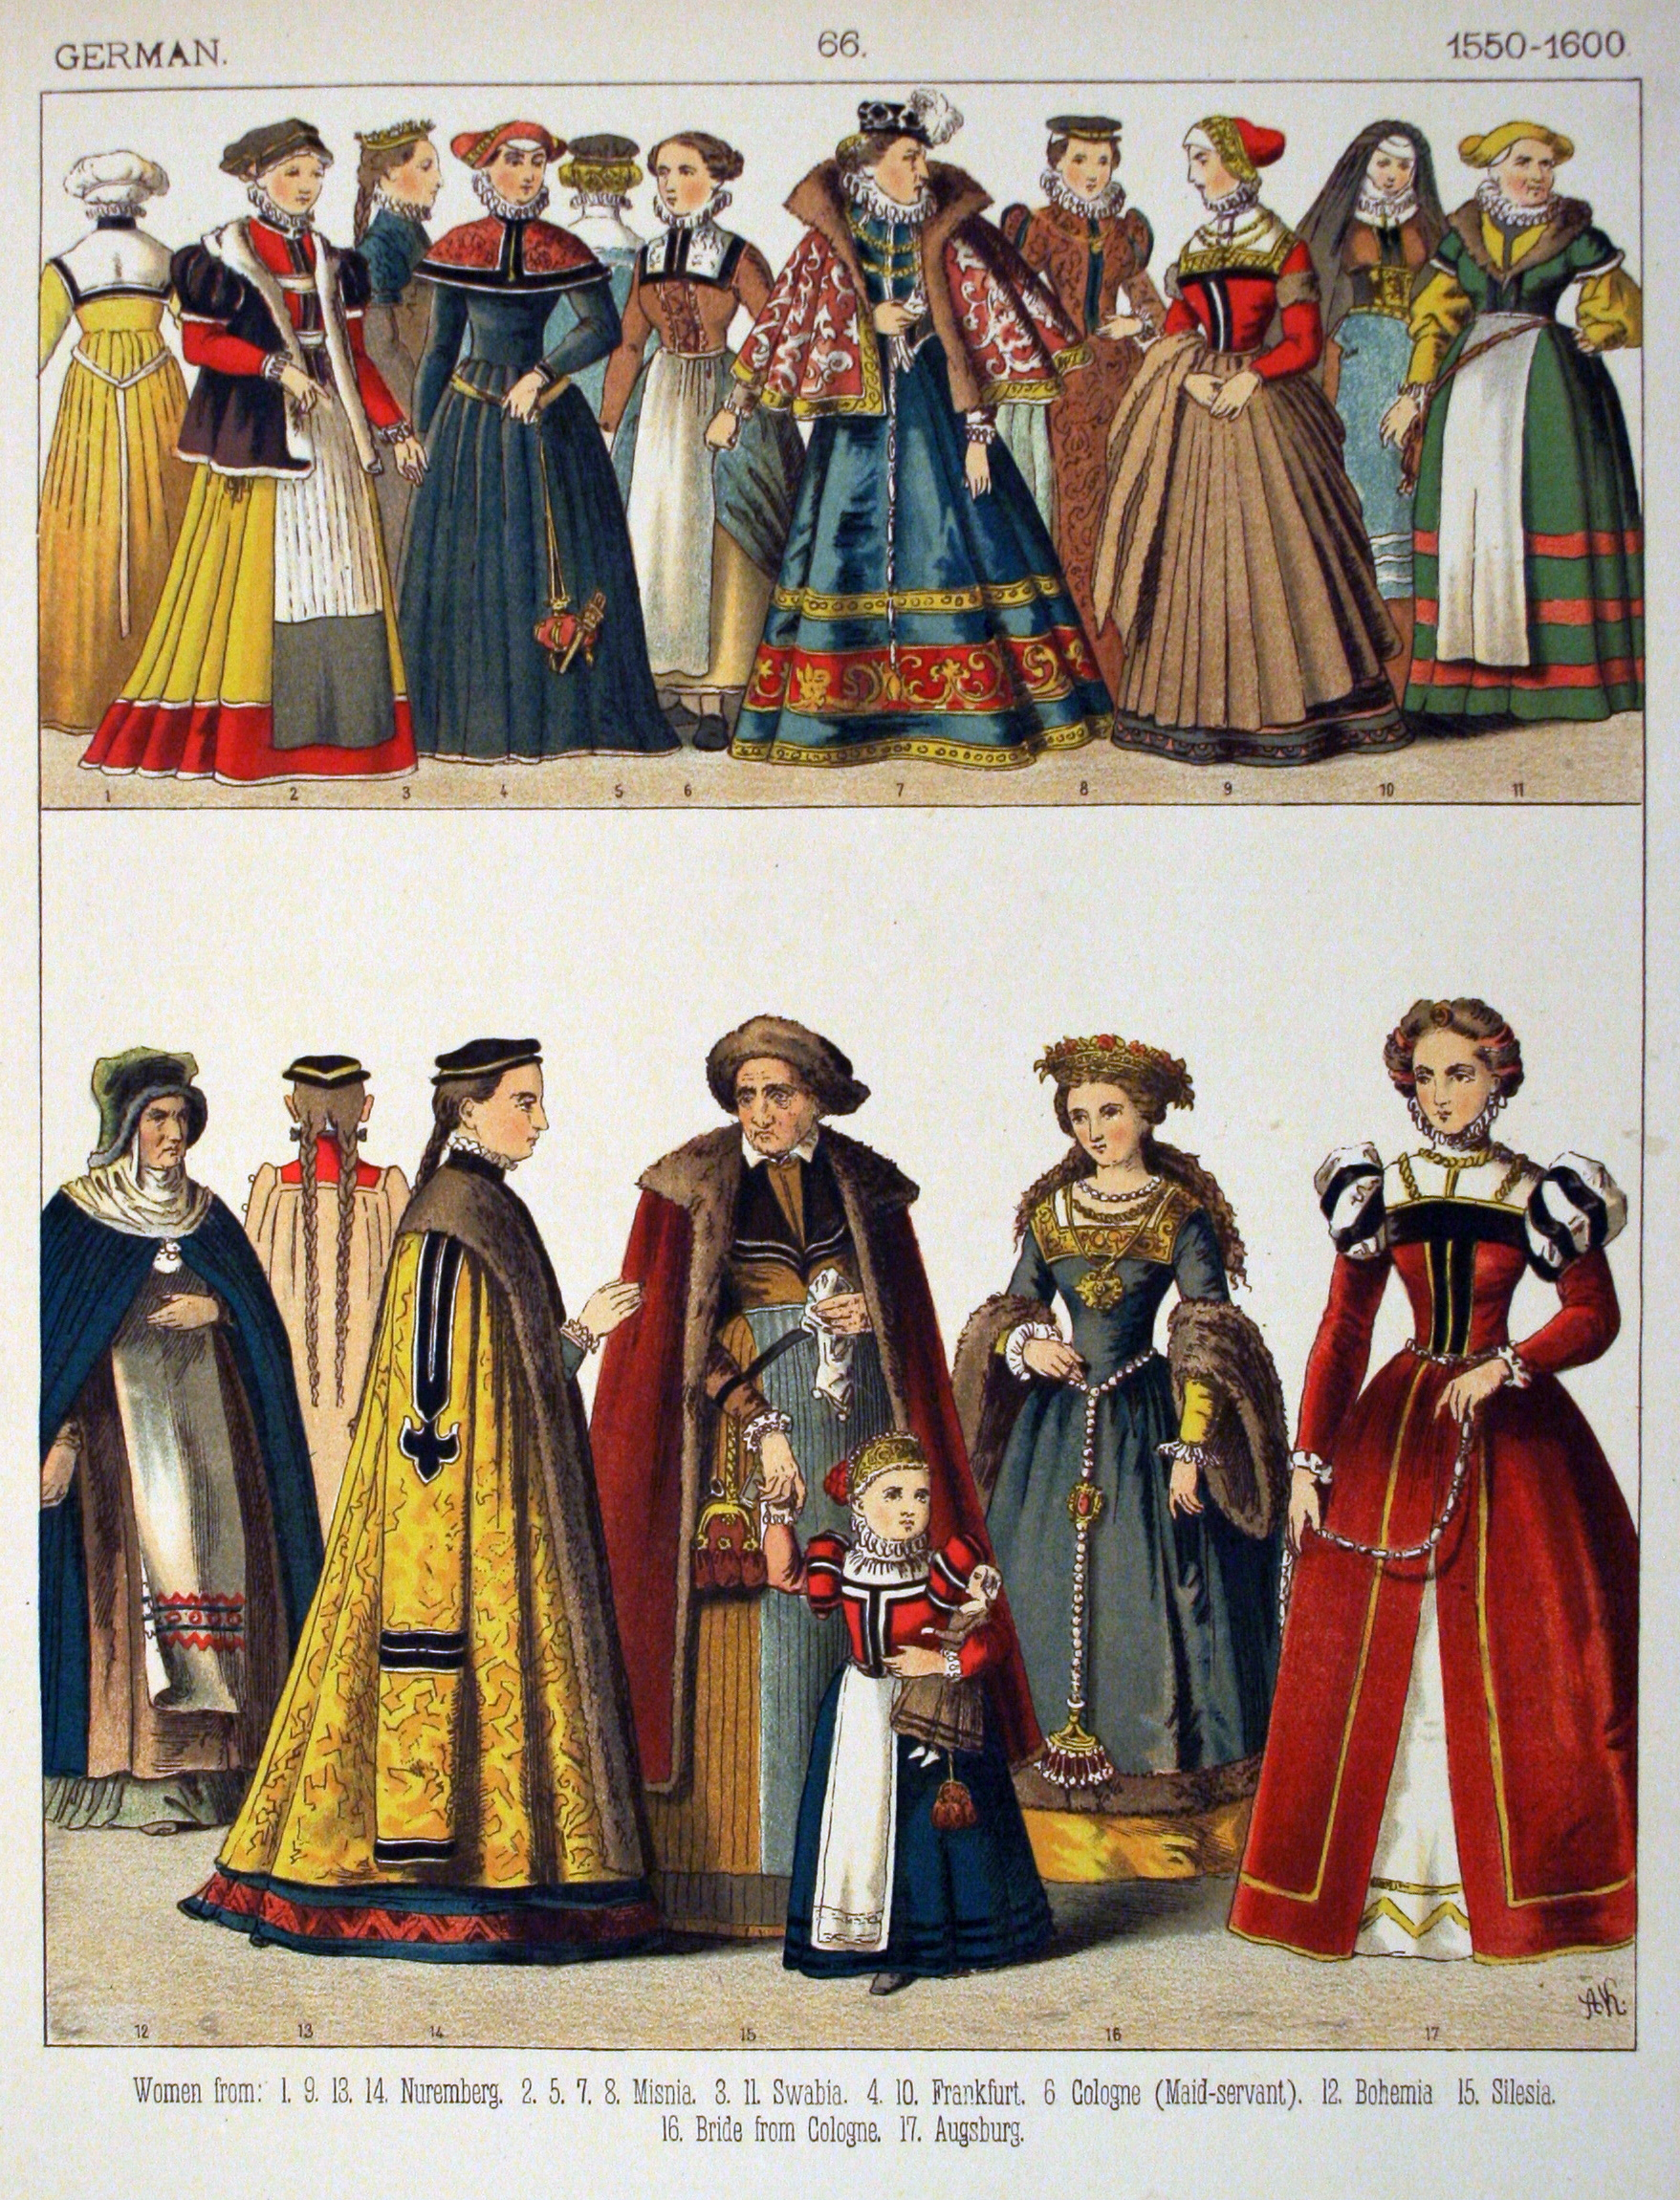 File:1550-1600, German. - 066 - Costumes of All Nations (